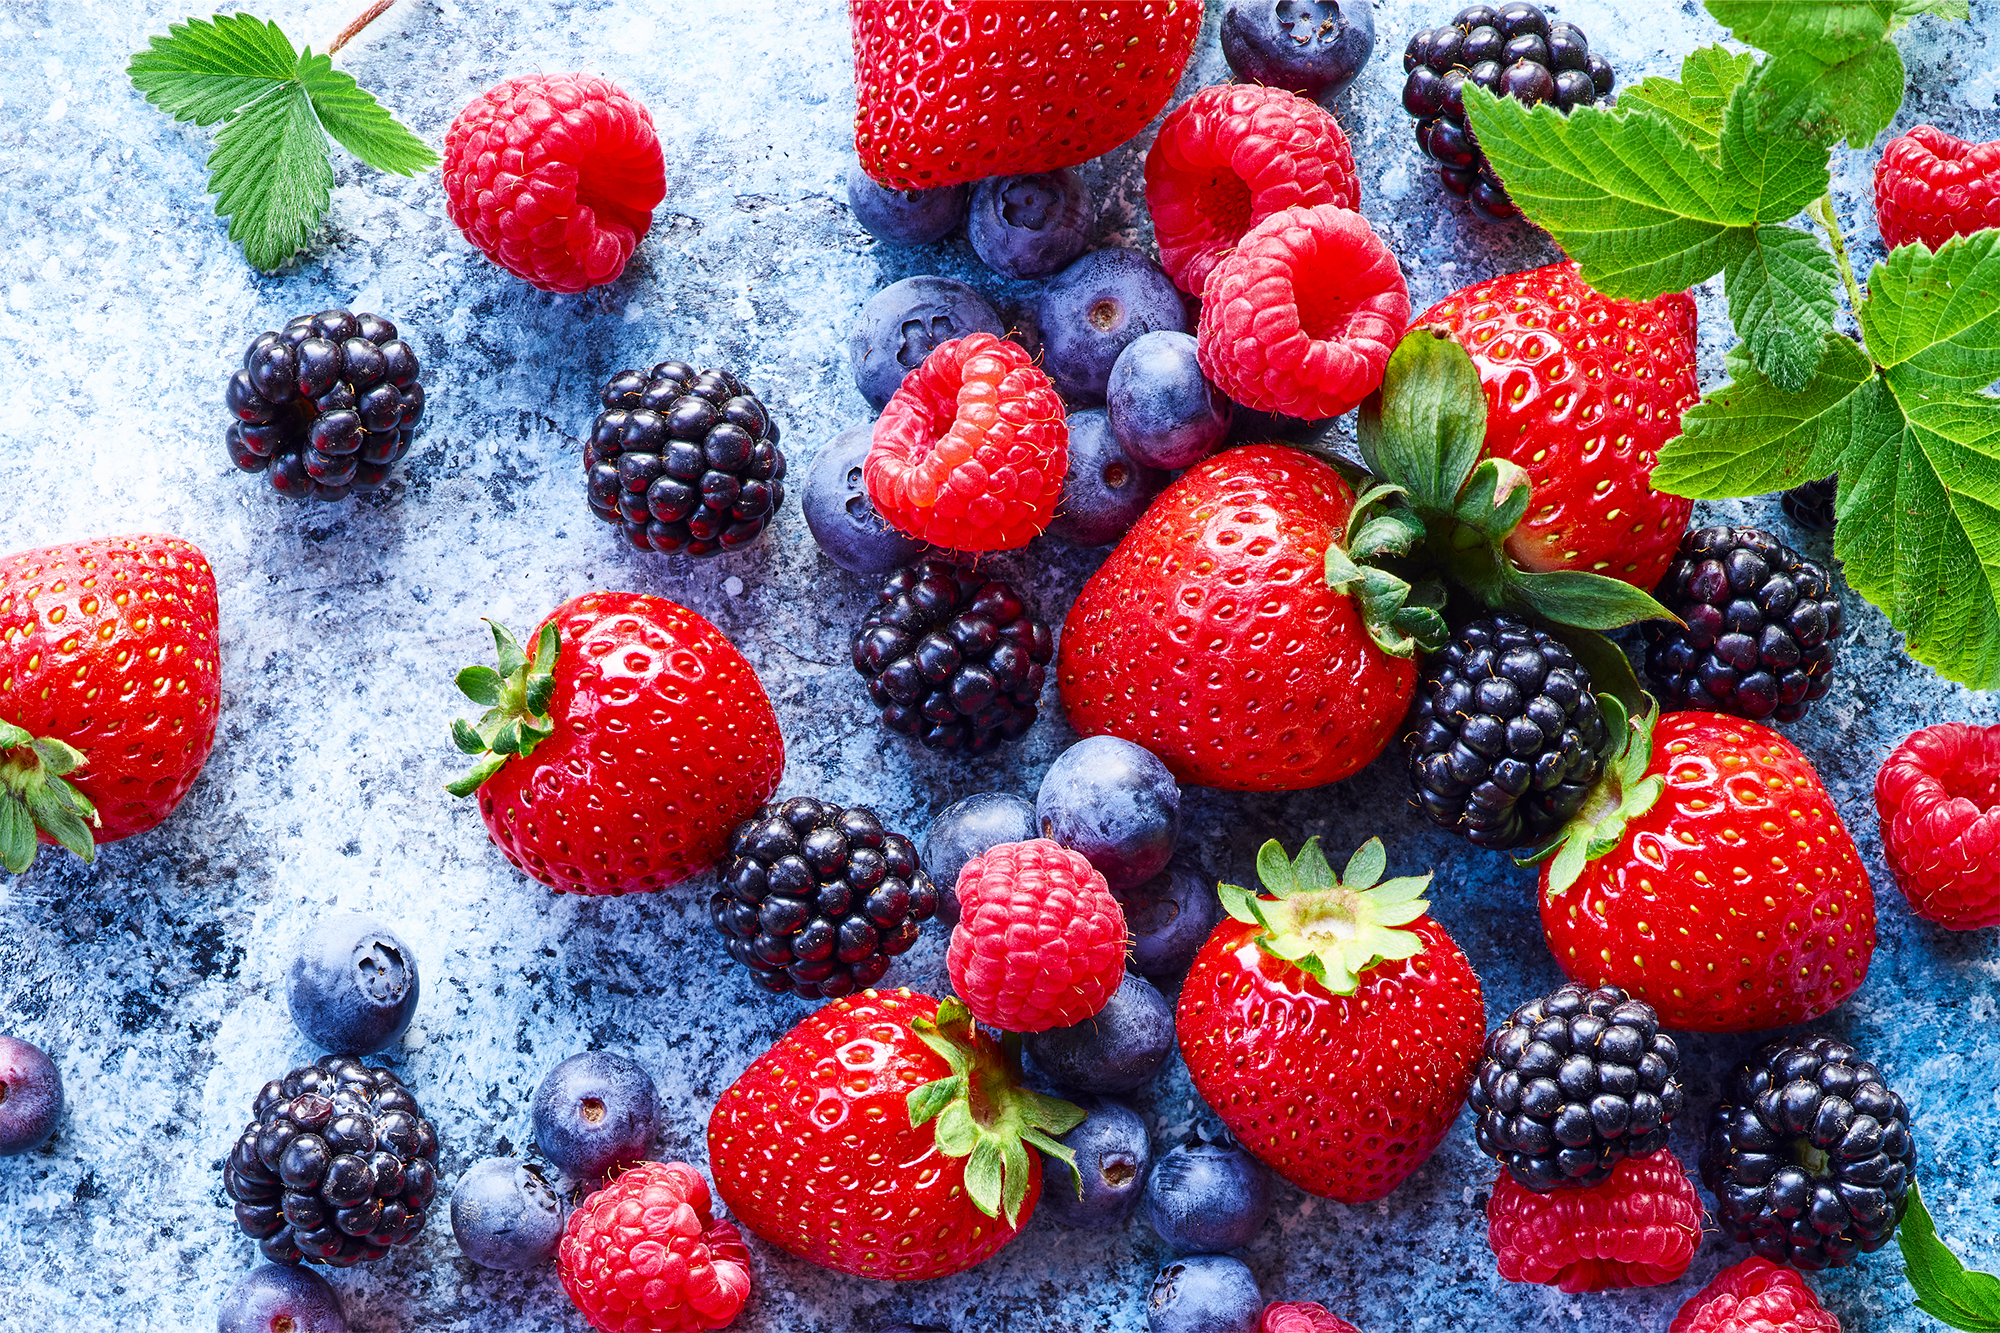 Mixed berries on a textured blue and white background